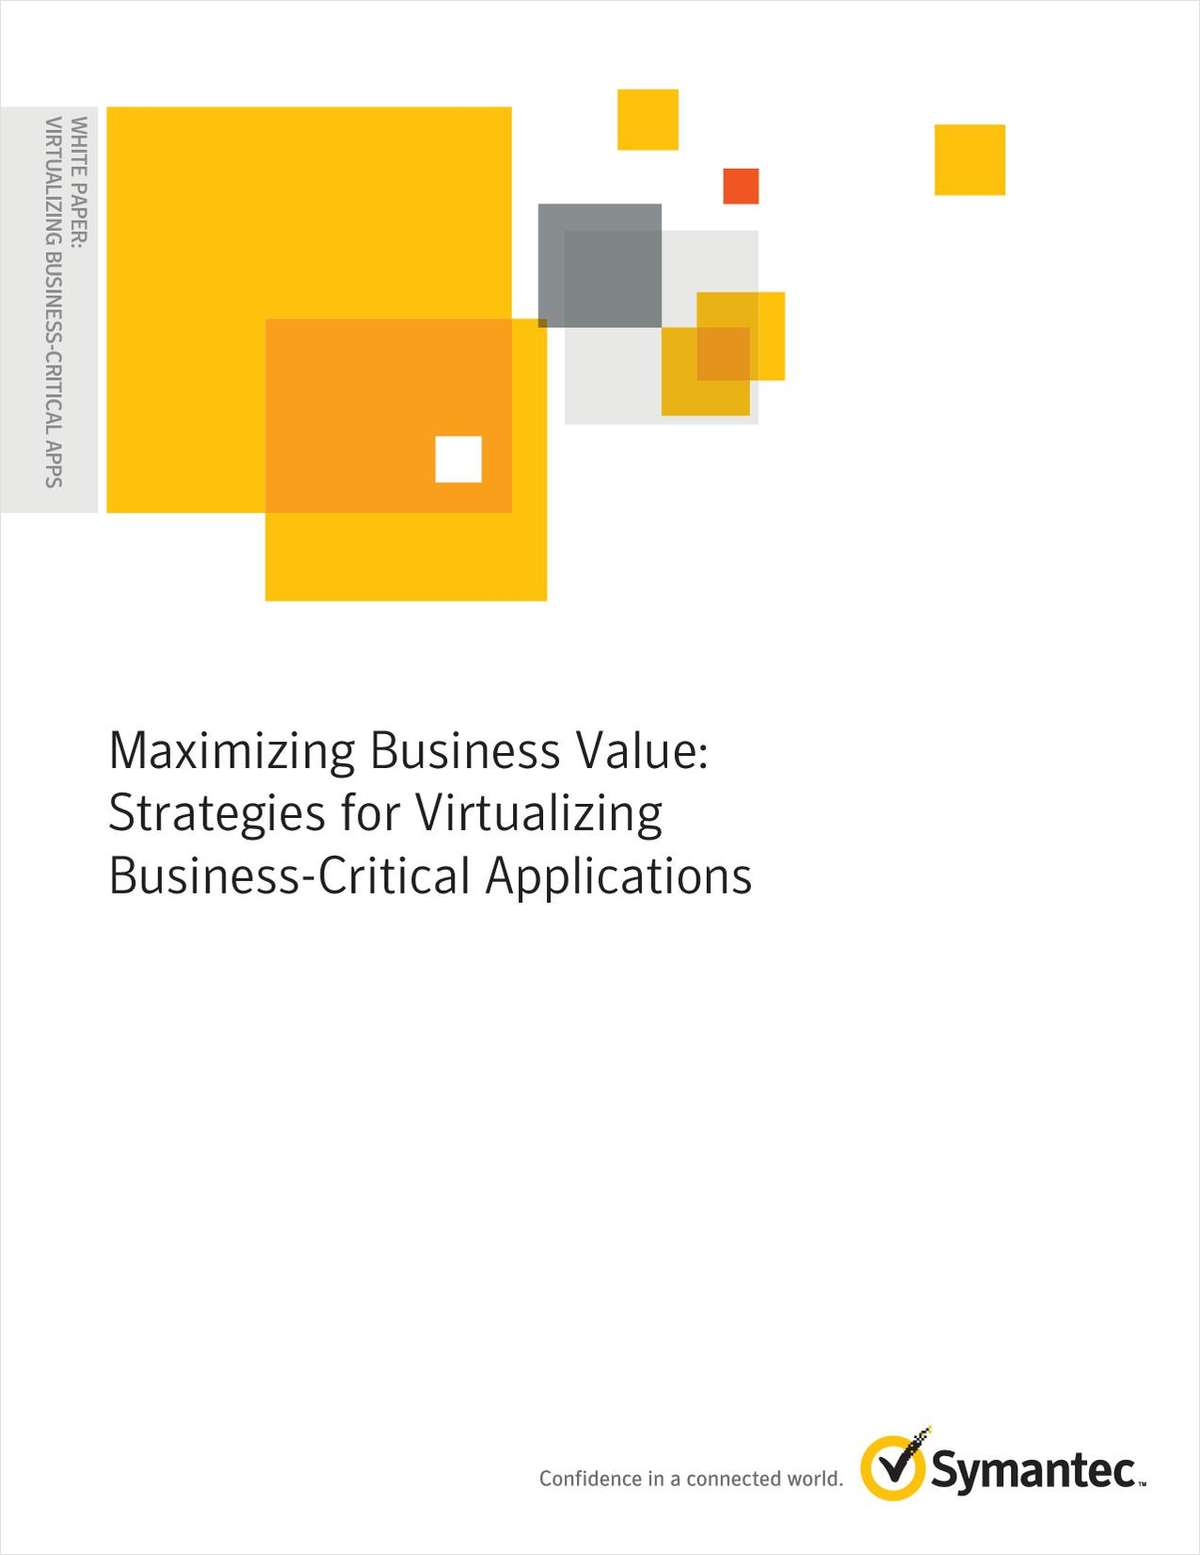 Maximizing Business Value: Strategies for Virtualizing Business-Critical Applications